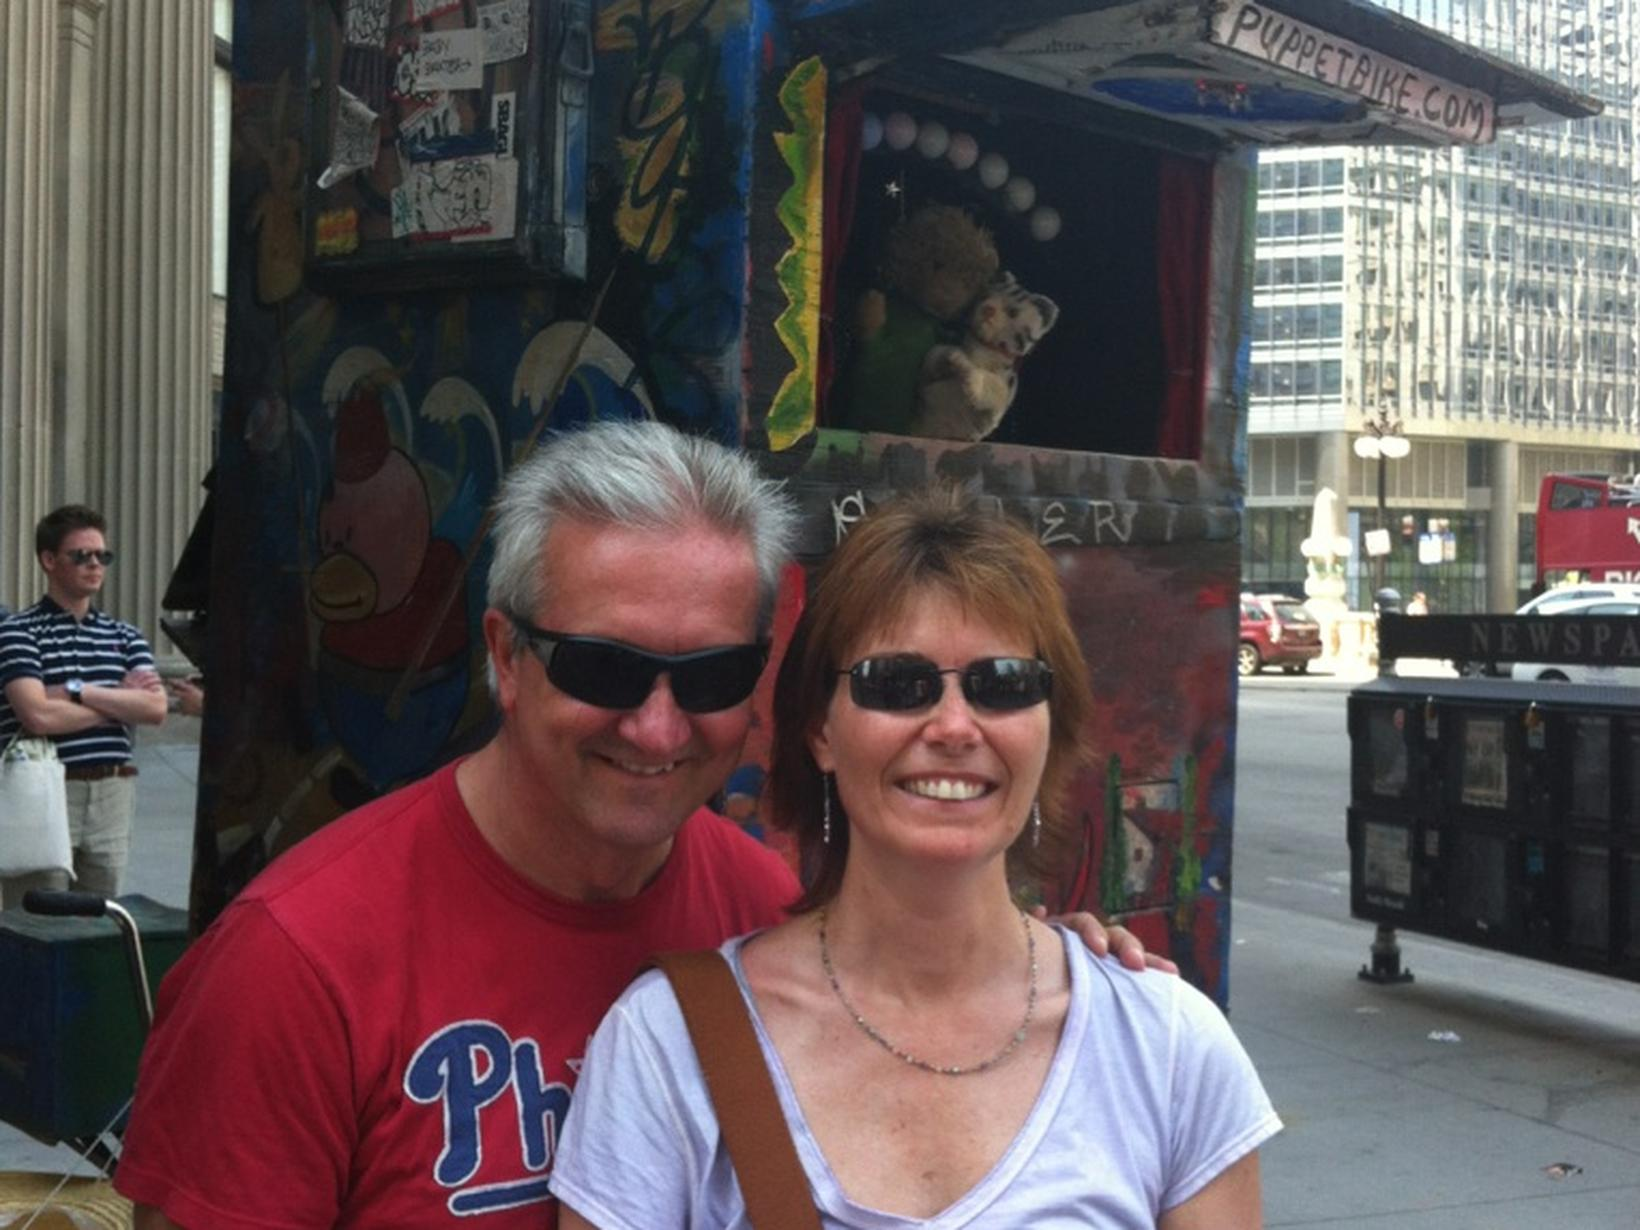 Greg & Abby from Chicago Loop, Illinois, United States